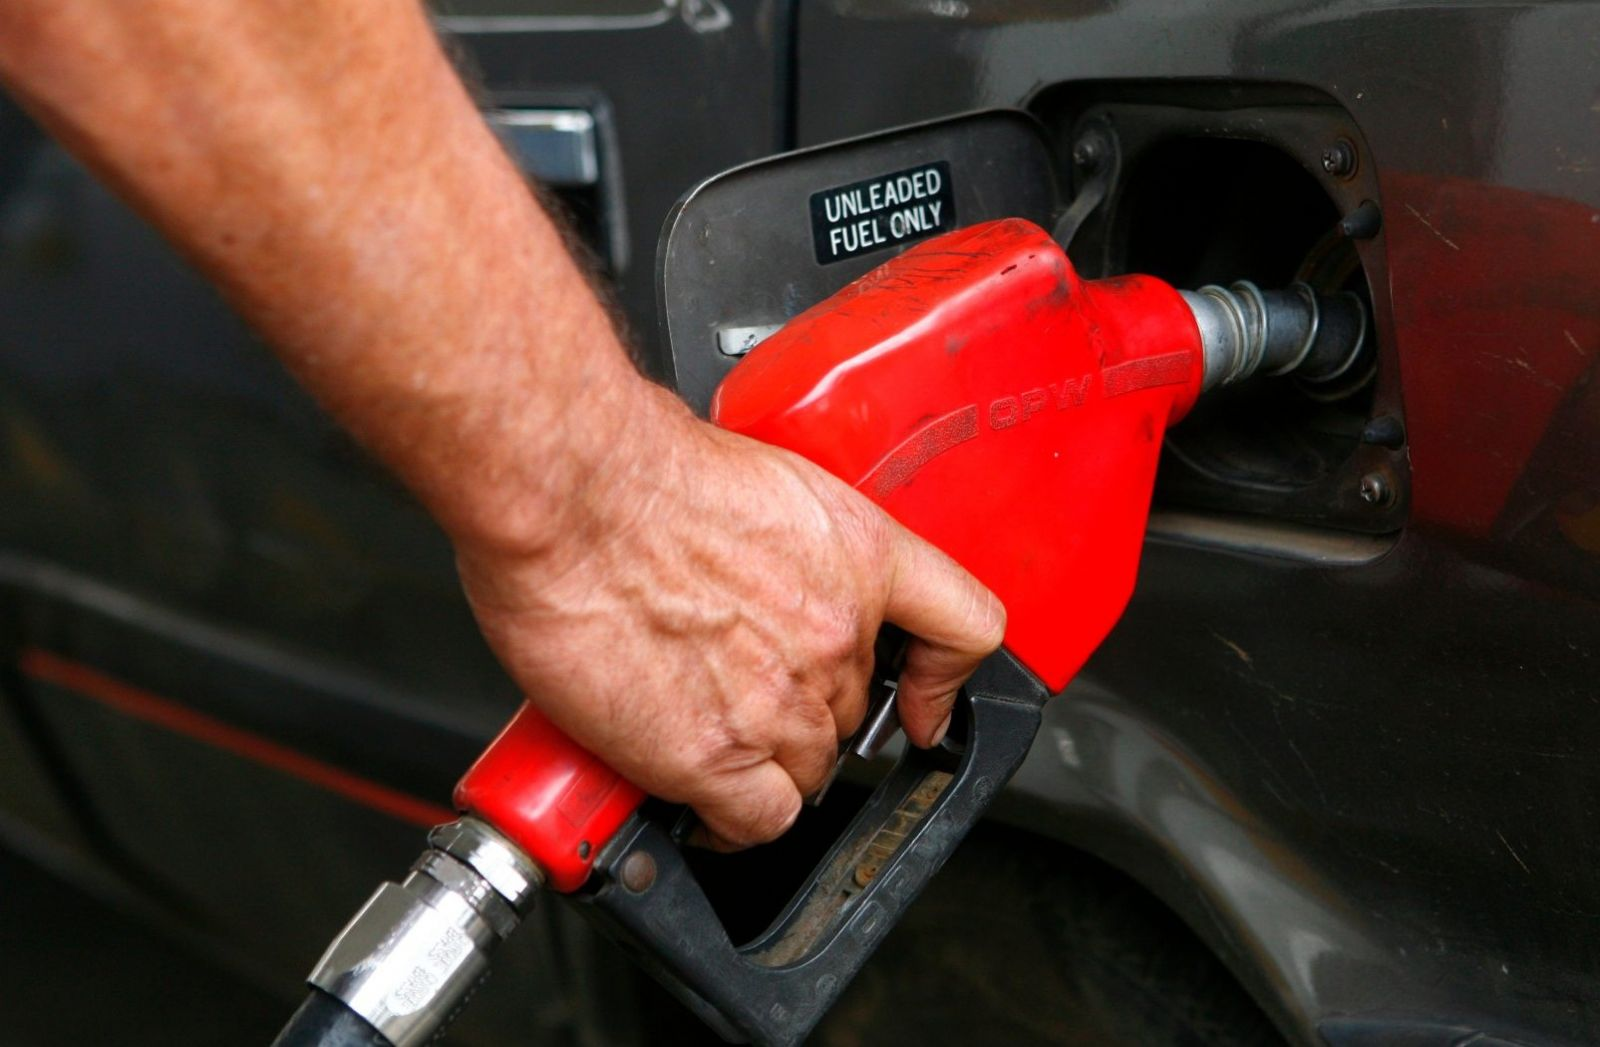 Ethanol share in Brazil's fuel mix set to rise on Petrobras price decision